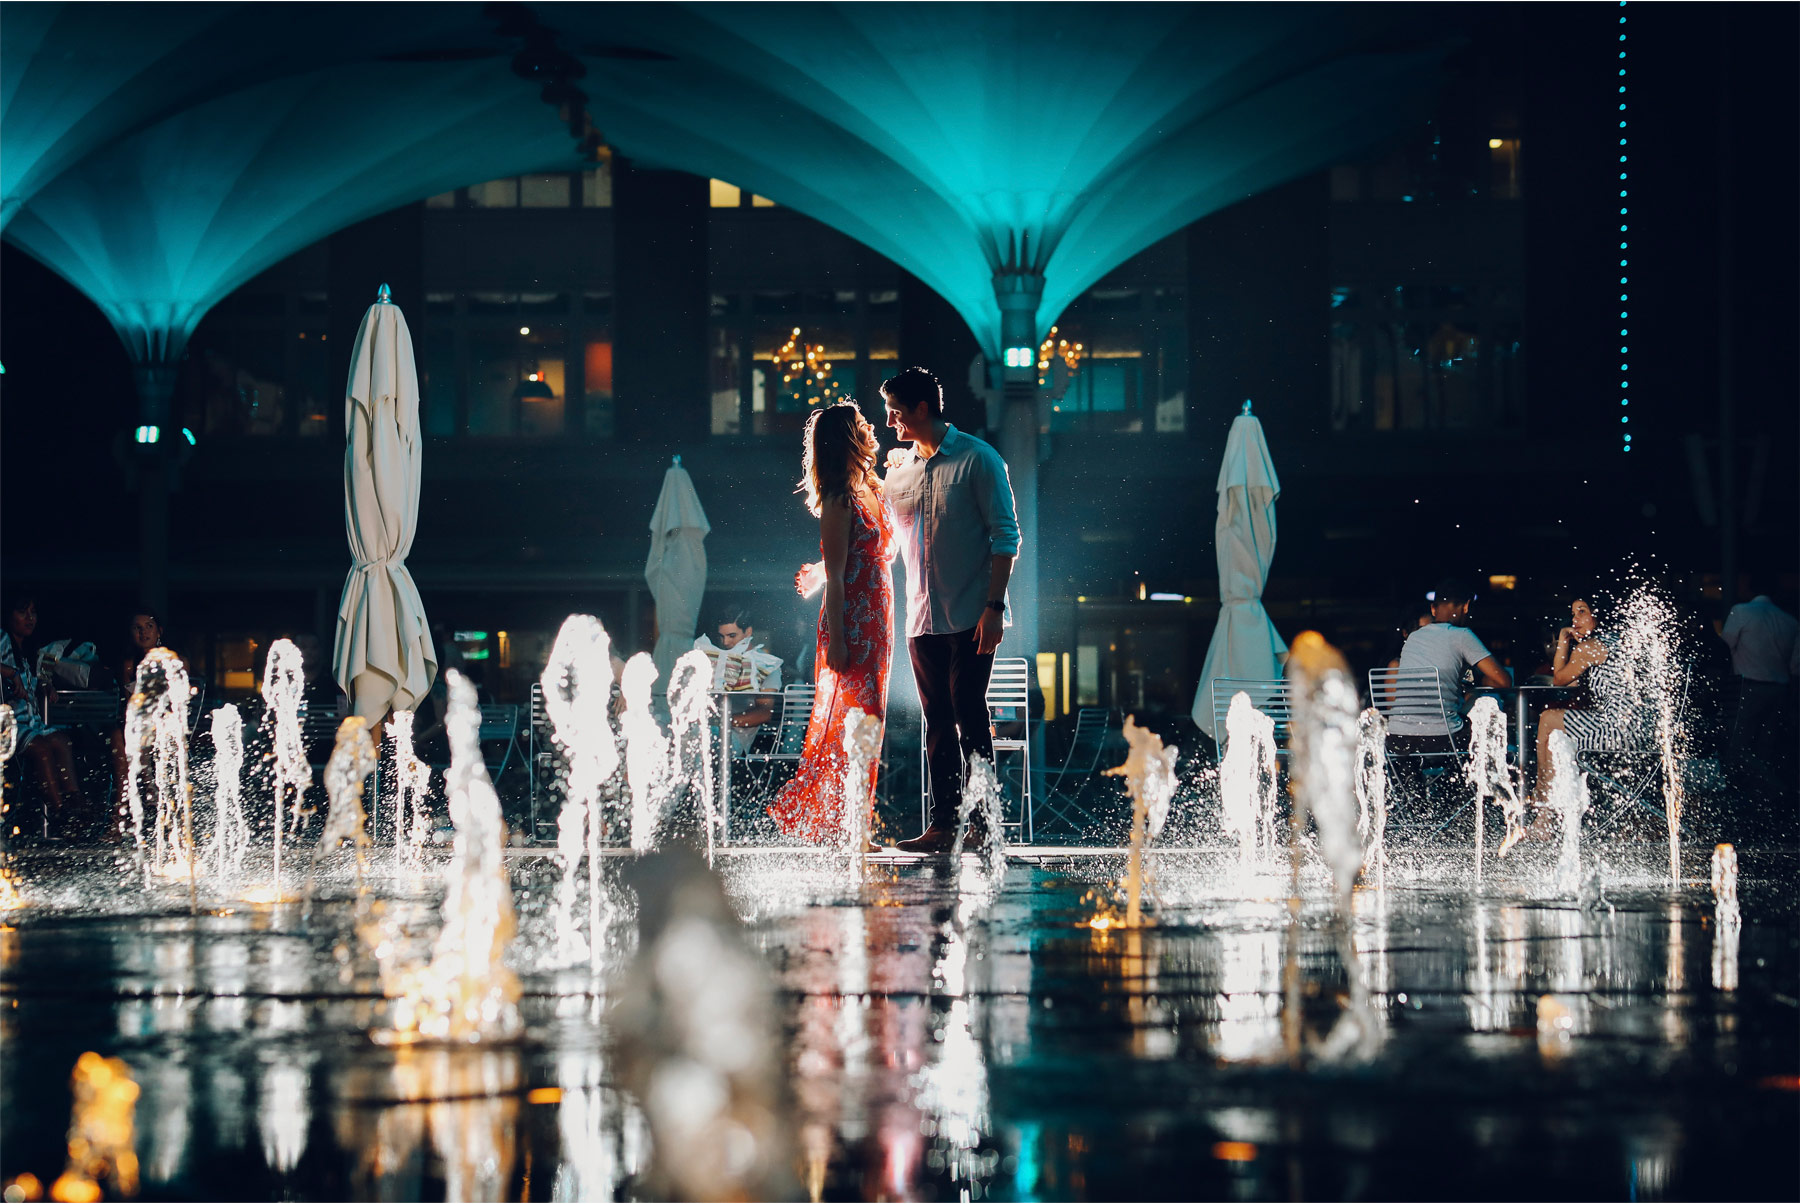 18-Fly-to-Me-Destination-Engagement-Session-Vick-Photography-Fort-Worth-Texas-Couple-Night-Skyline-City-Lights-Downtown-Fountain-Maggie-and-Matt.jpg